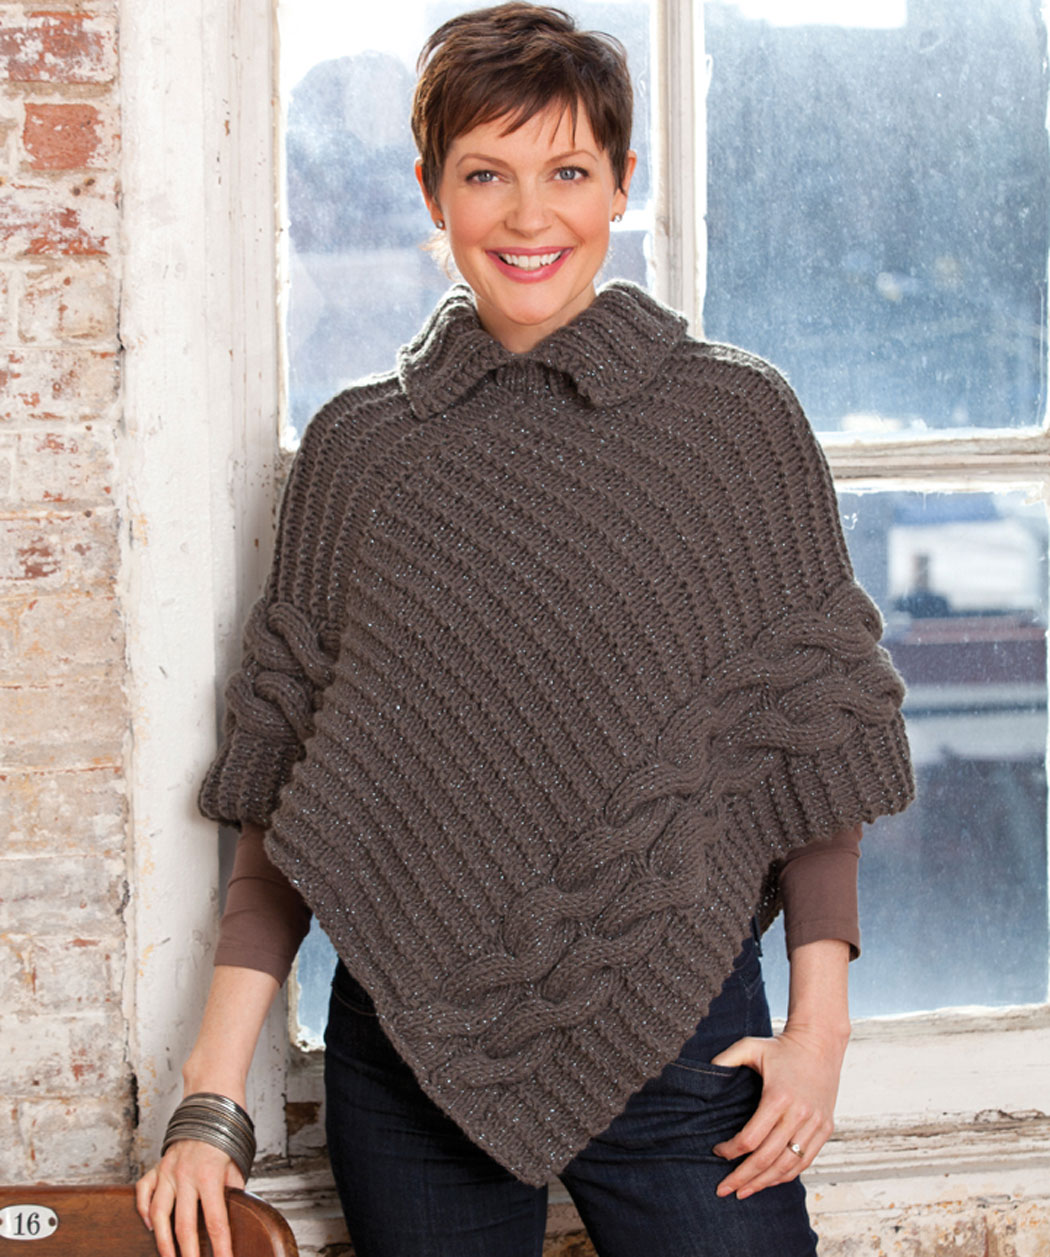 Cabled & Collared Poncho Knitting Pattern